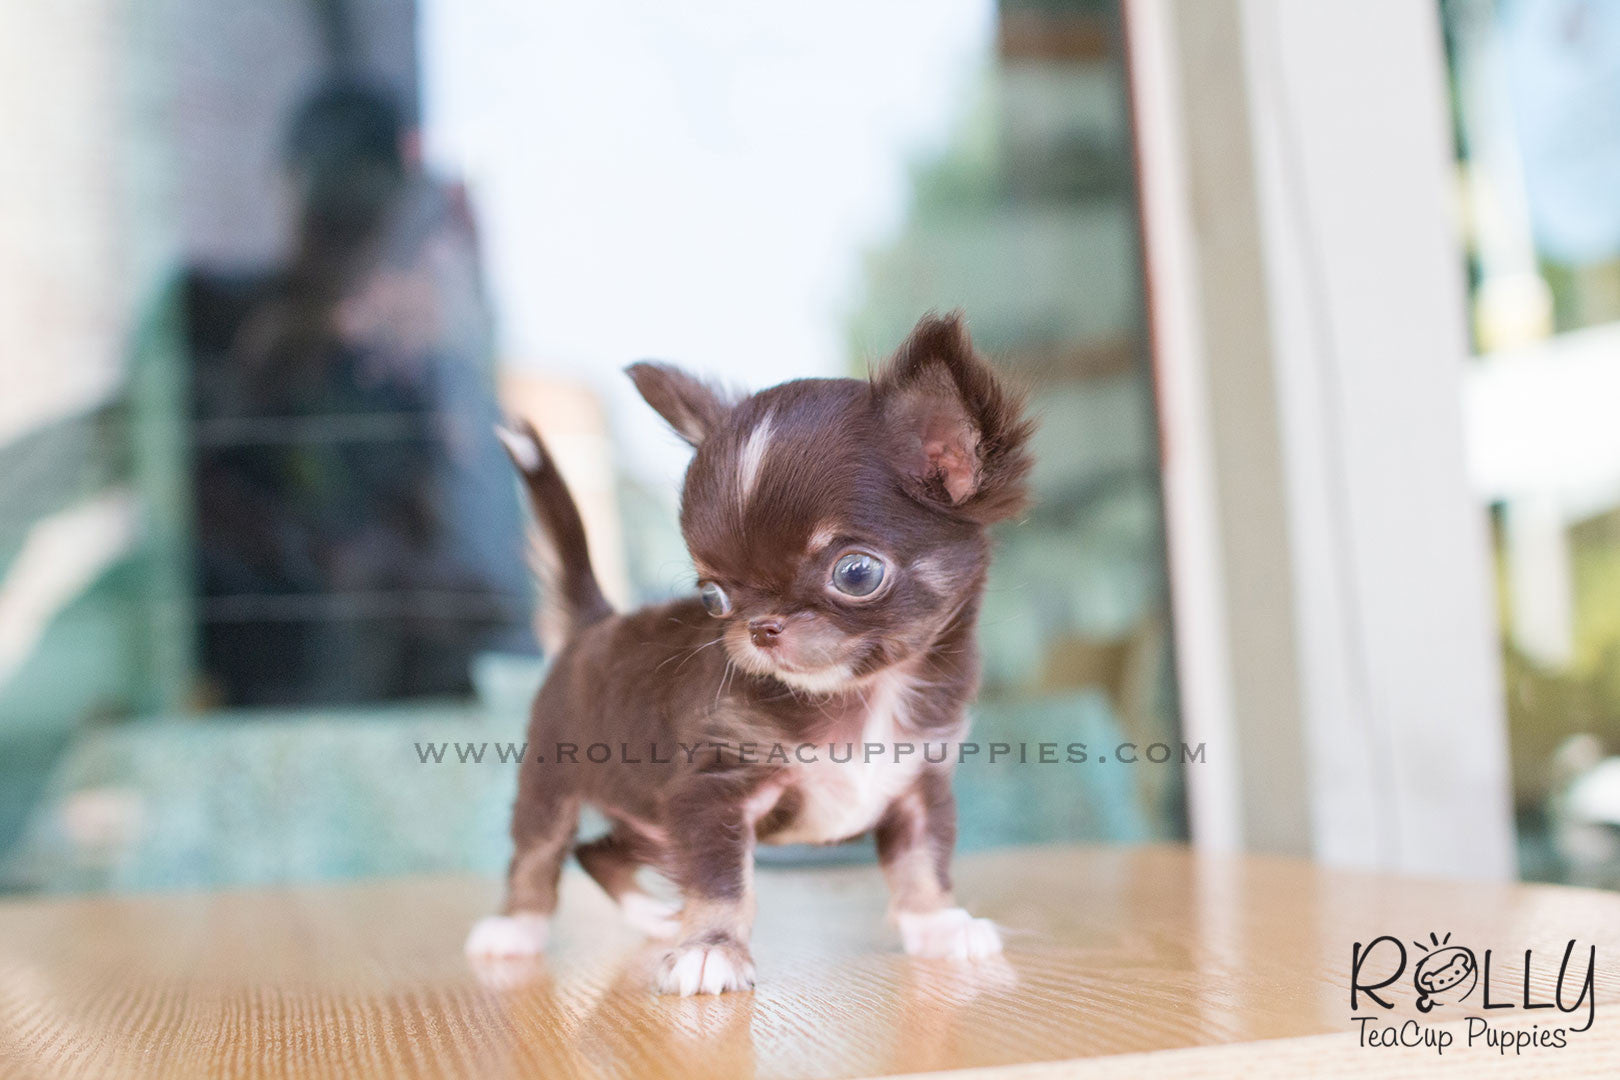 Peanut Chihuahua Rolly Teacup Puppies